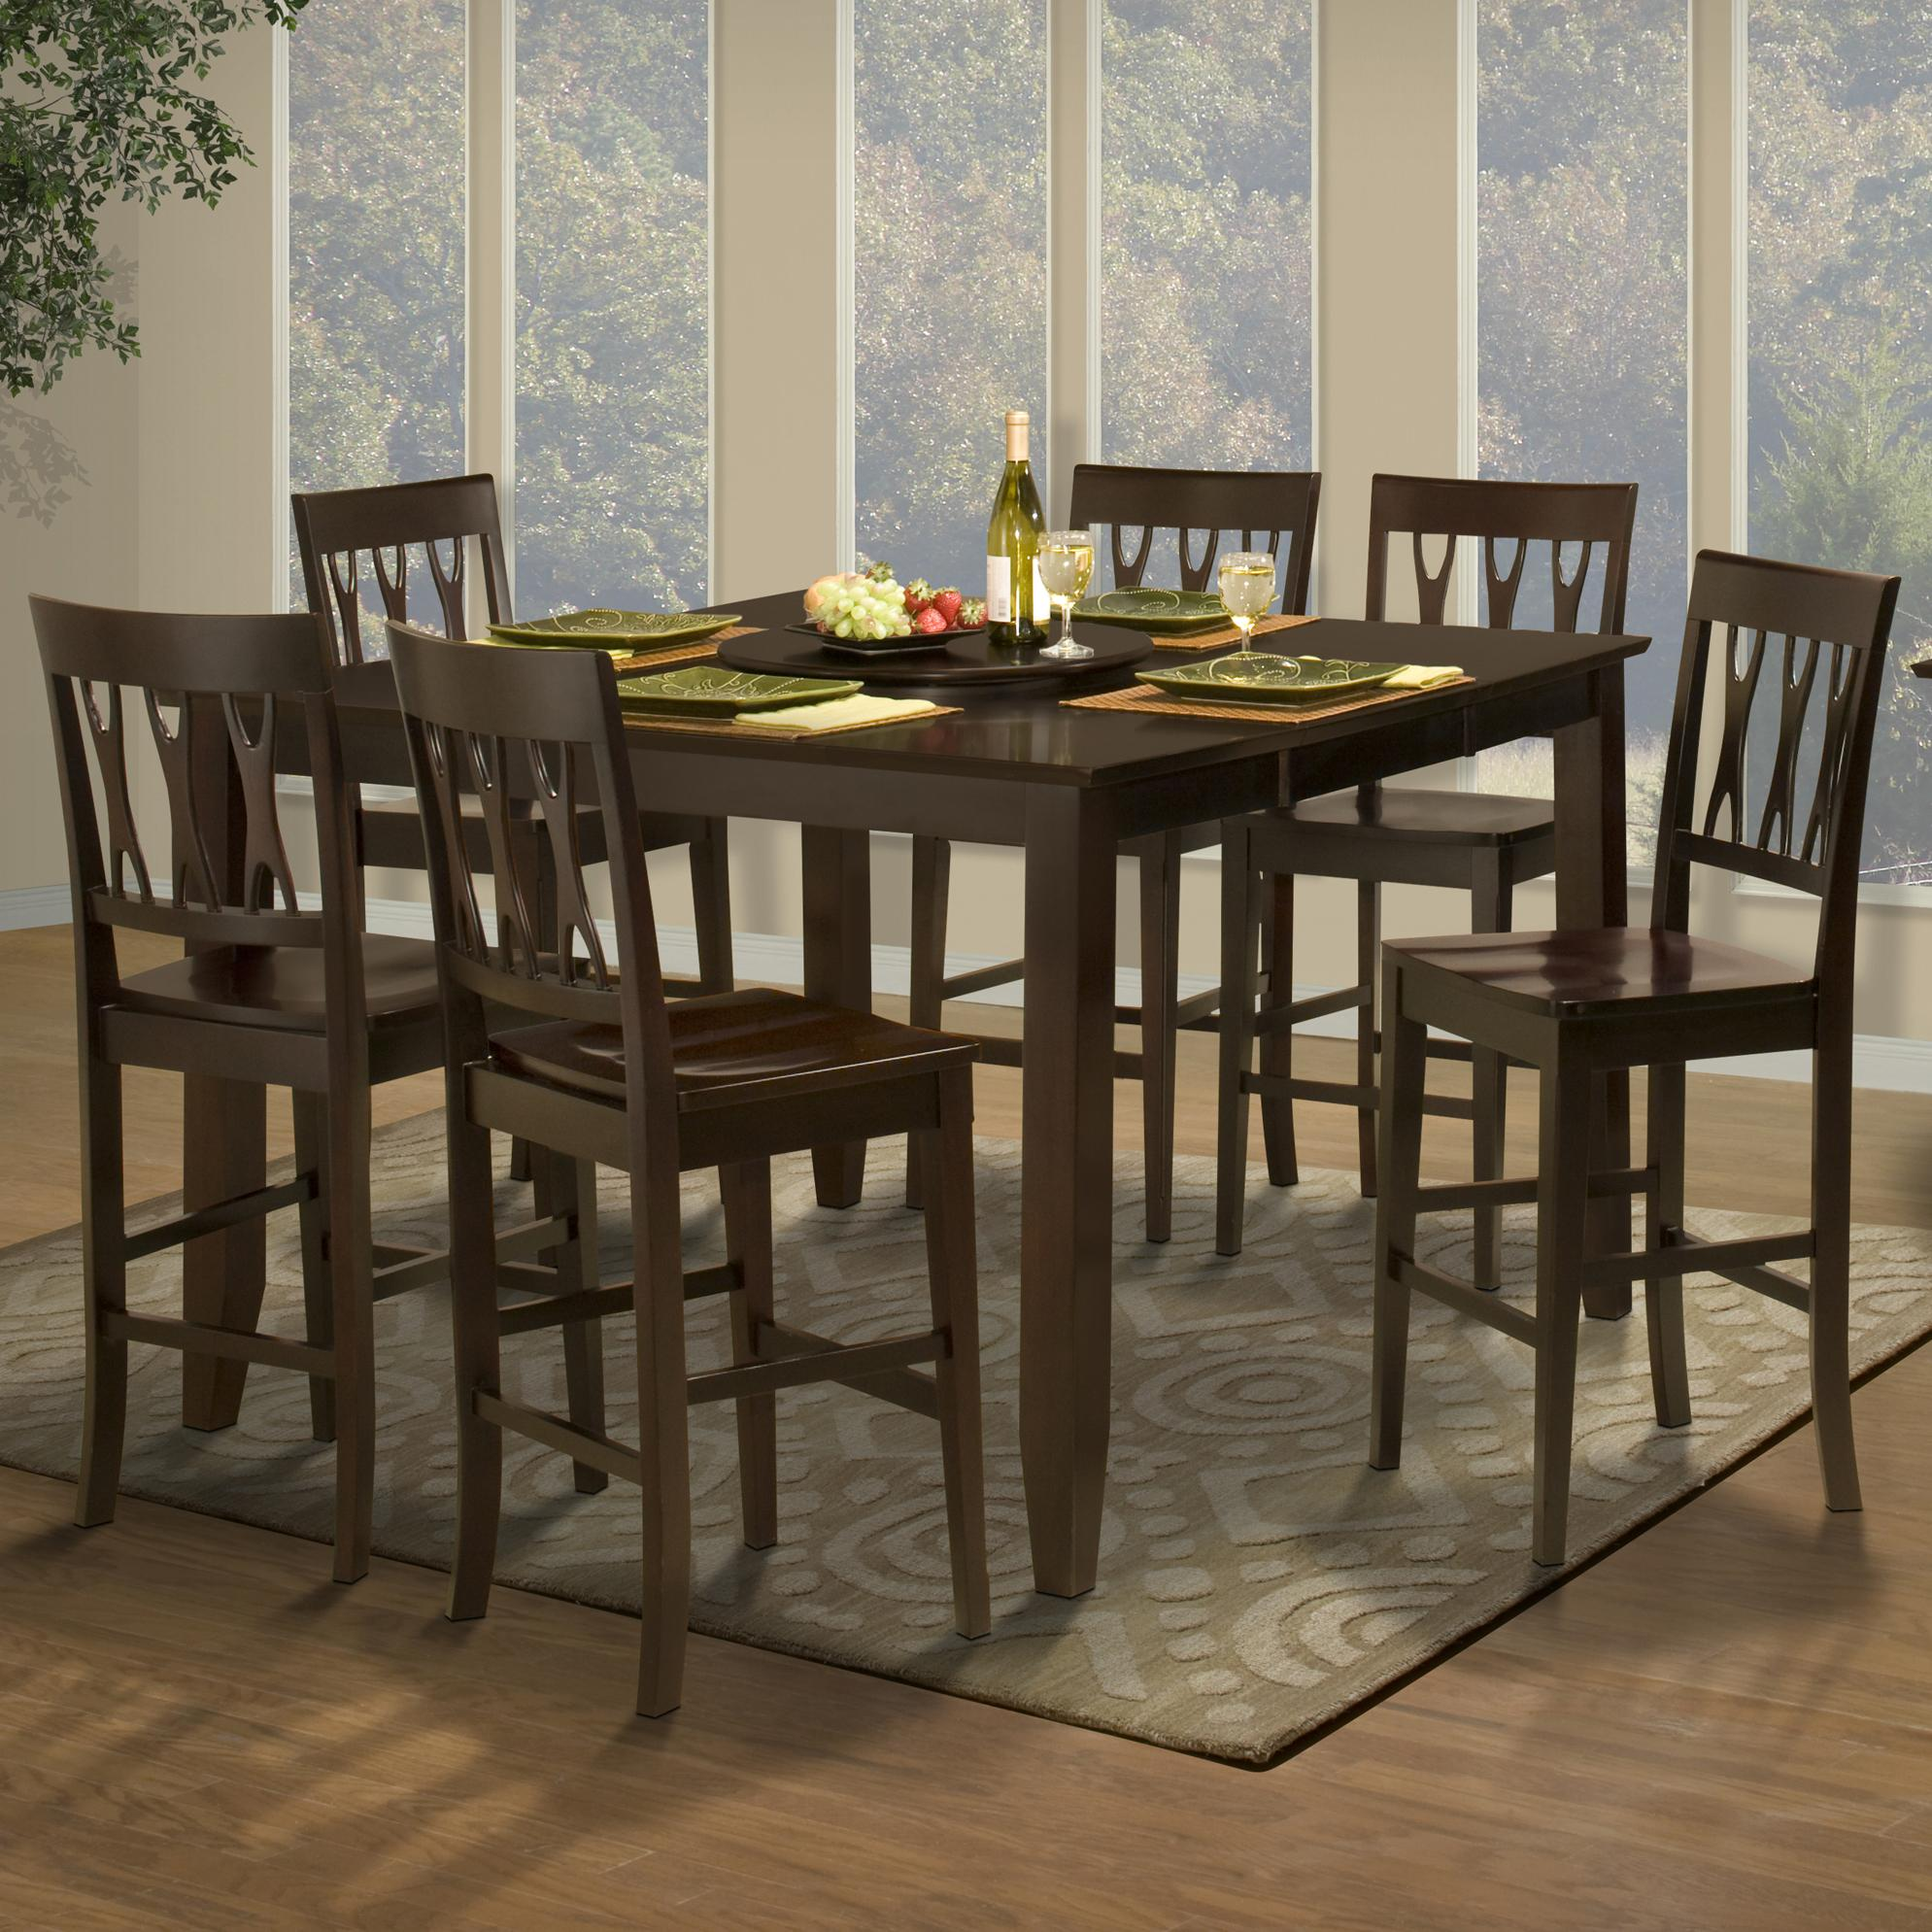 New classic style 19 45 006 11 counter height dining table for New style dining table